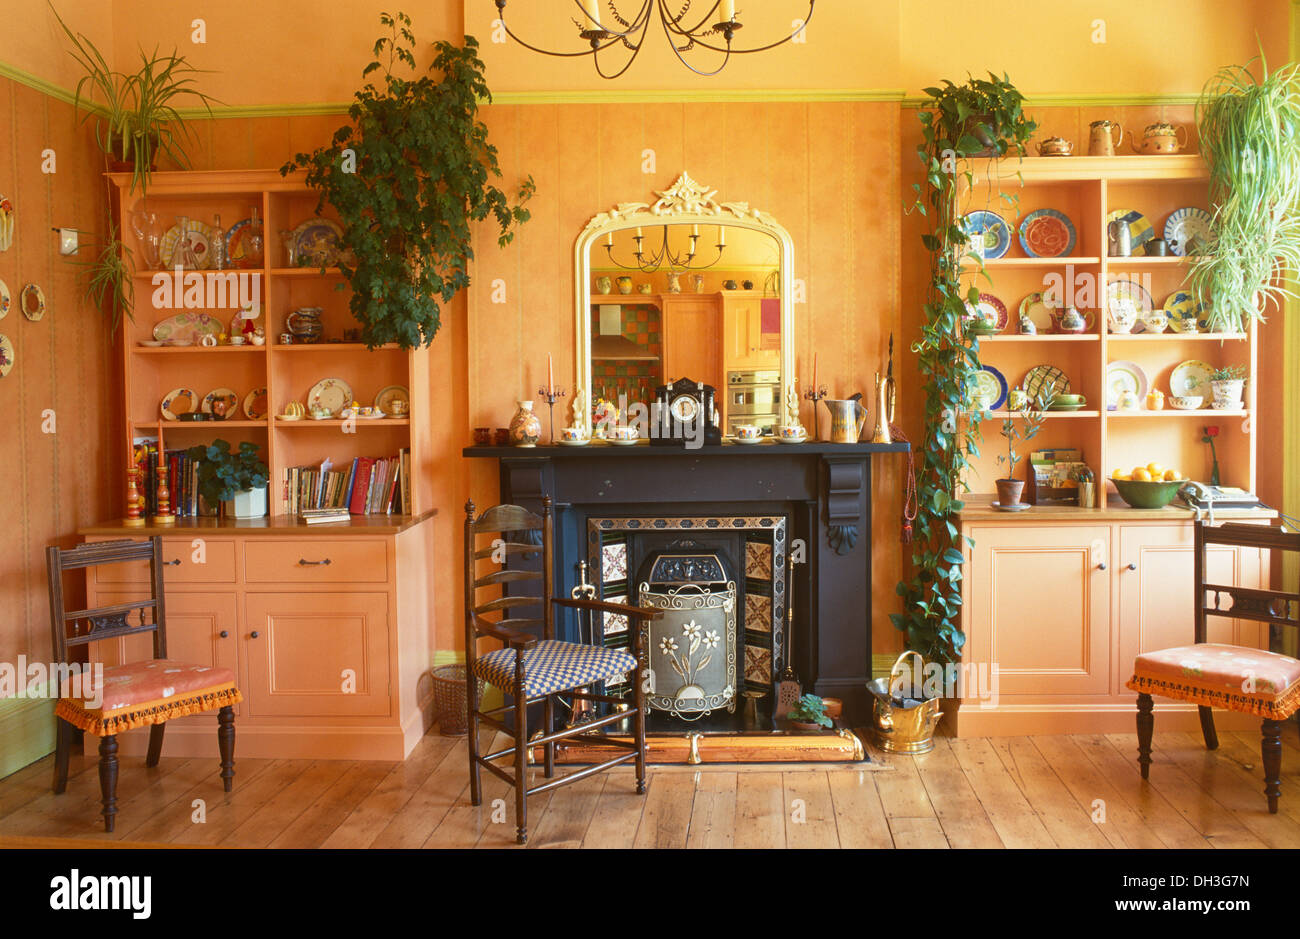 Antique Chairs And Painted Dressers On Either Side Of Black Victorian Fireplace In Pale Orange Dining Room With Wooden Flooring